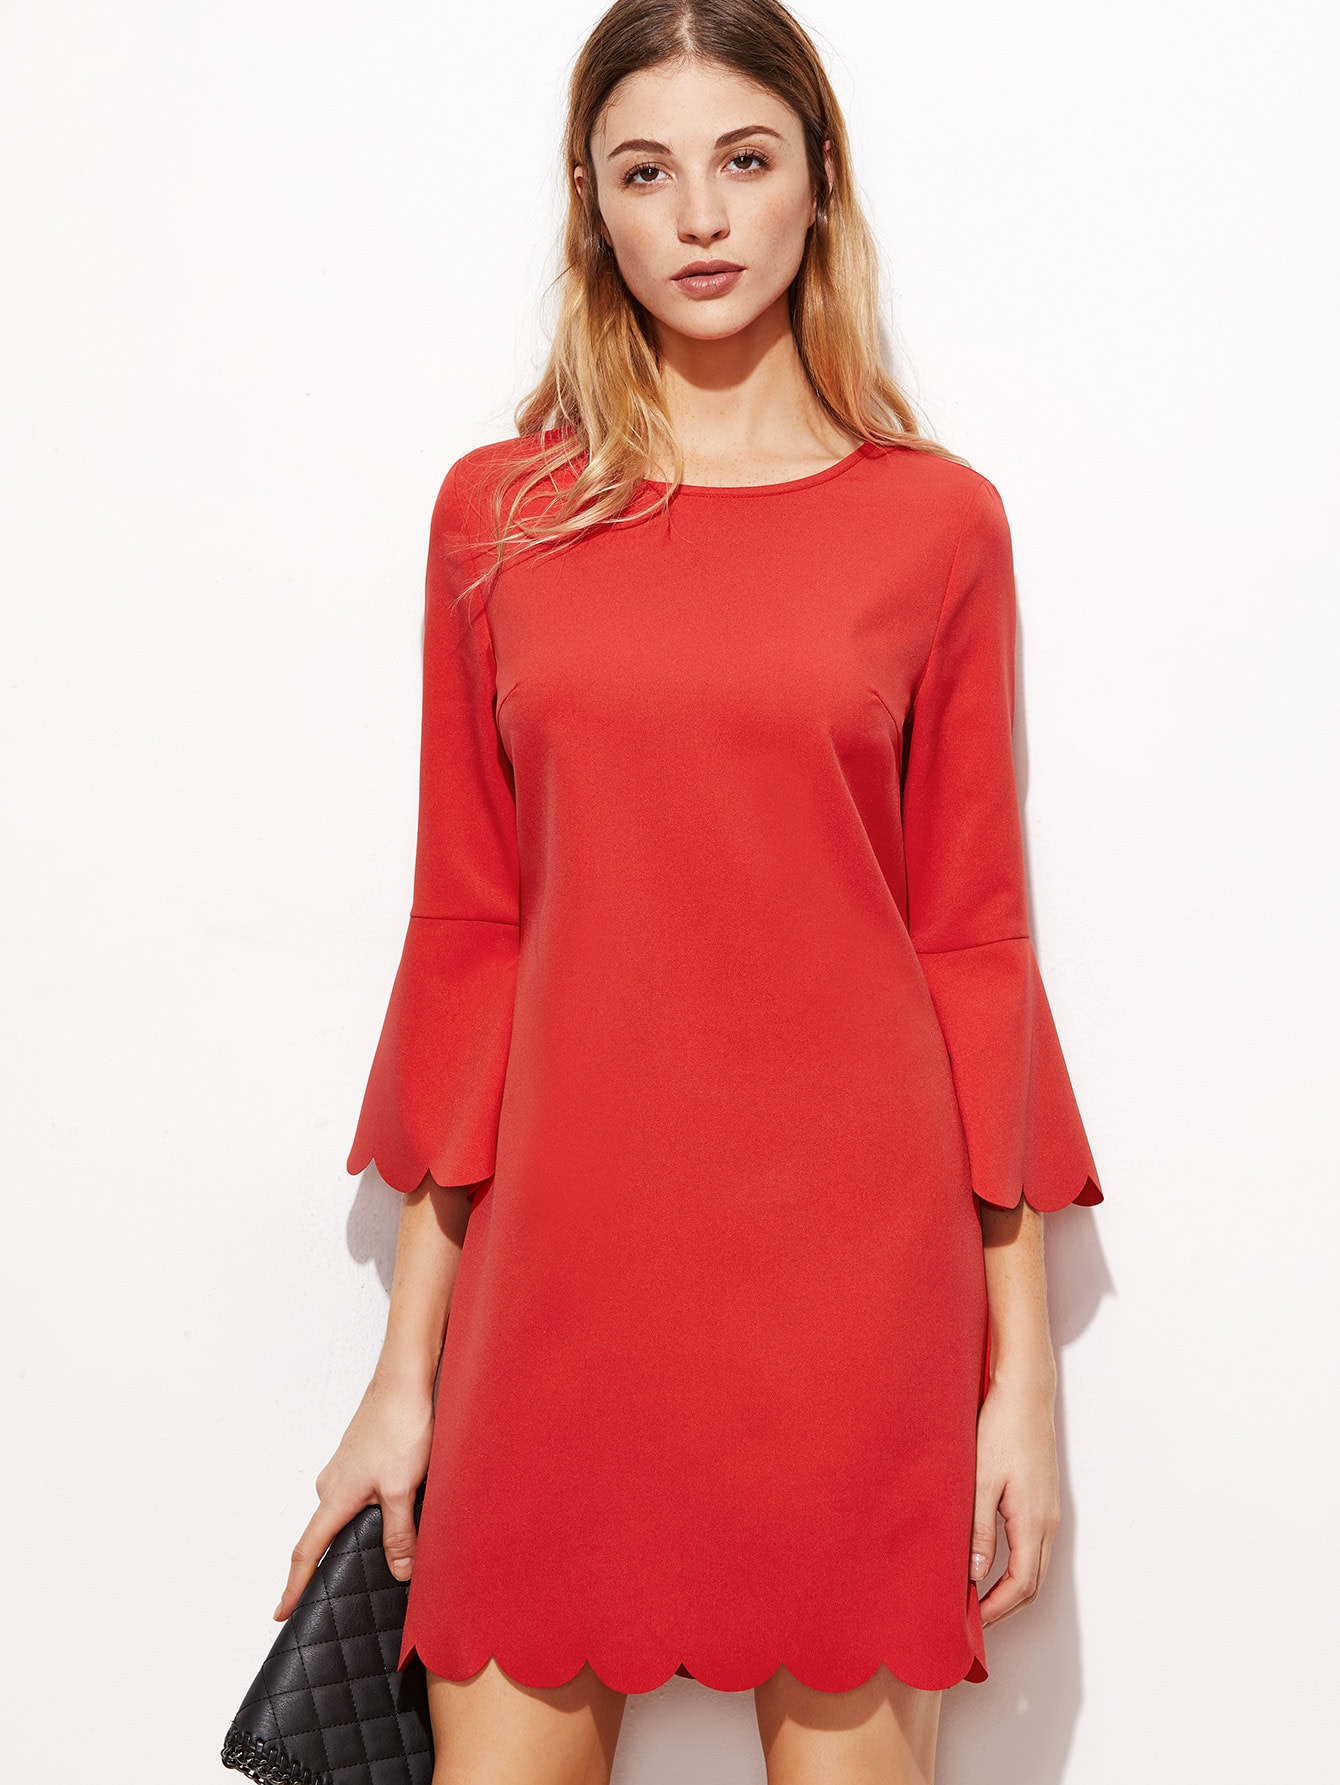 Red Scallop Trim Bell Cuff DressRed Scallop Trim Bell Cuff Dress<br><br>color: Red<br>size: L,M,S,XS